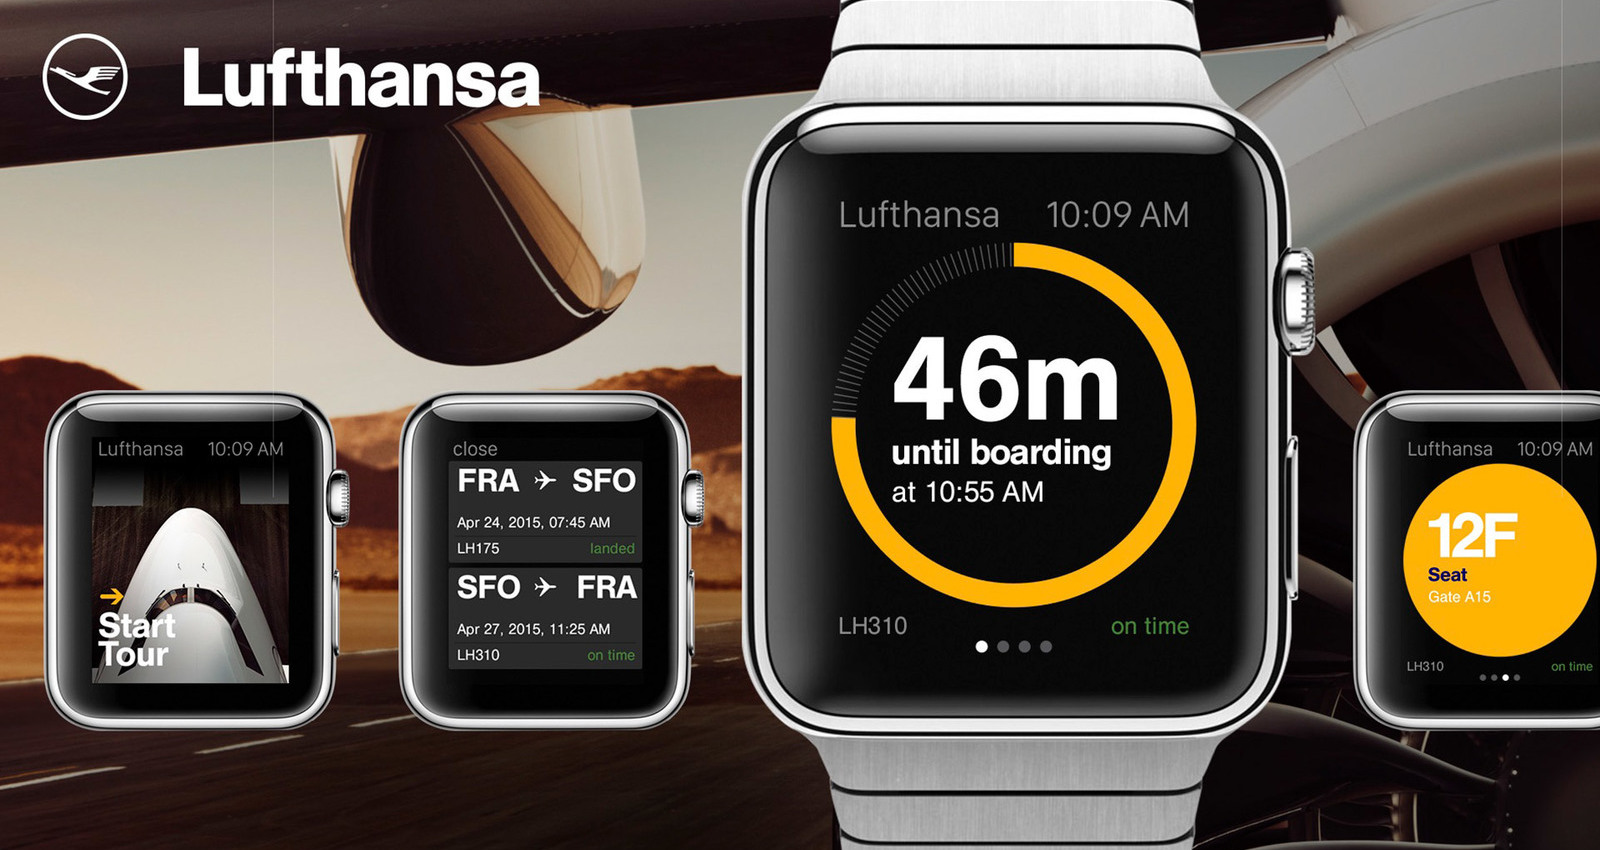 Lufthansa Apple Watch App